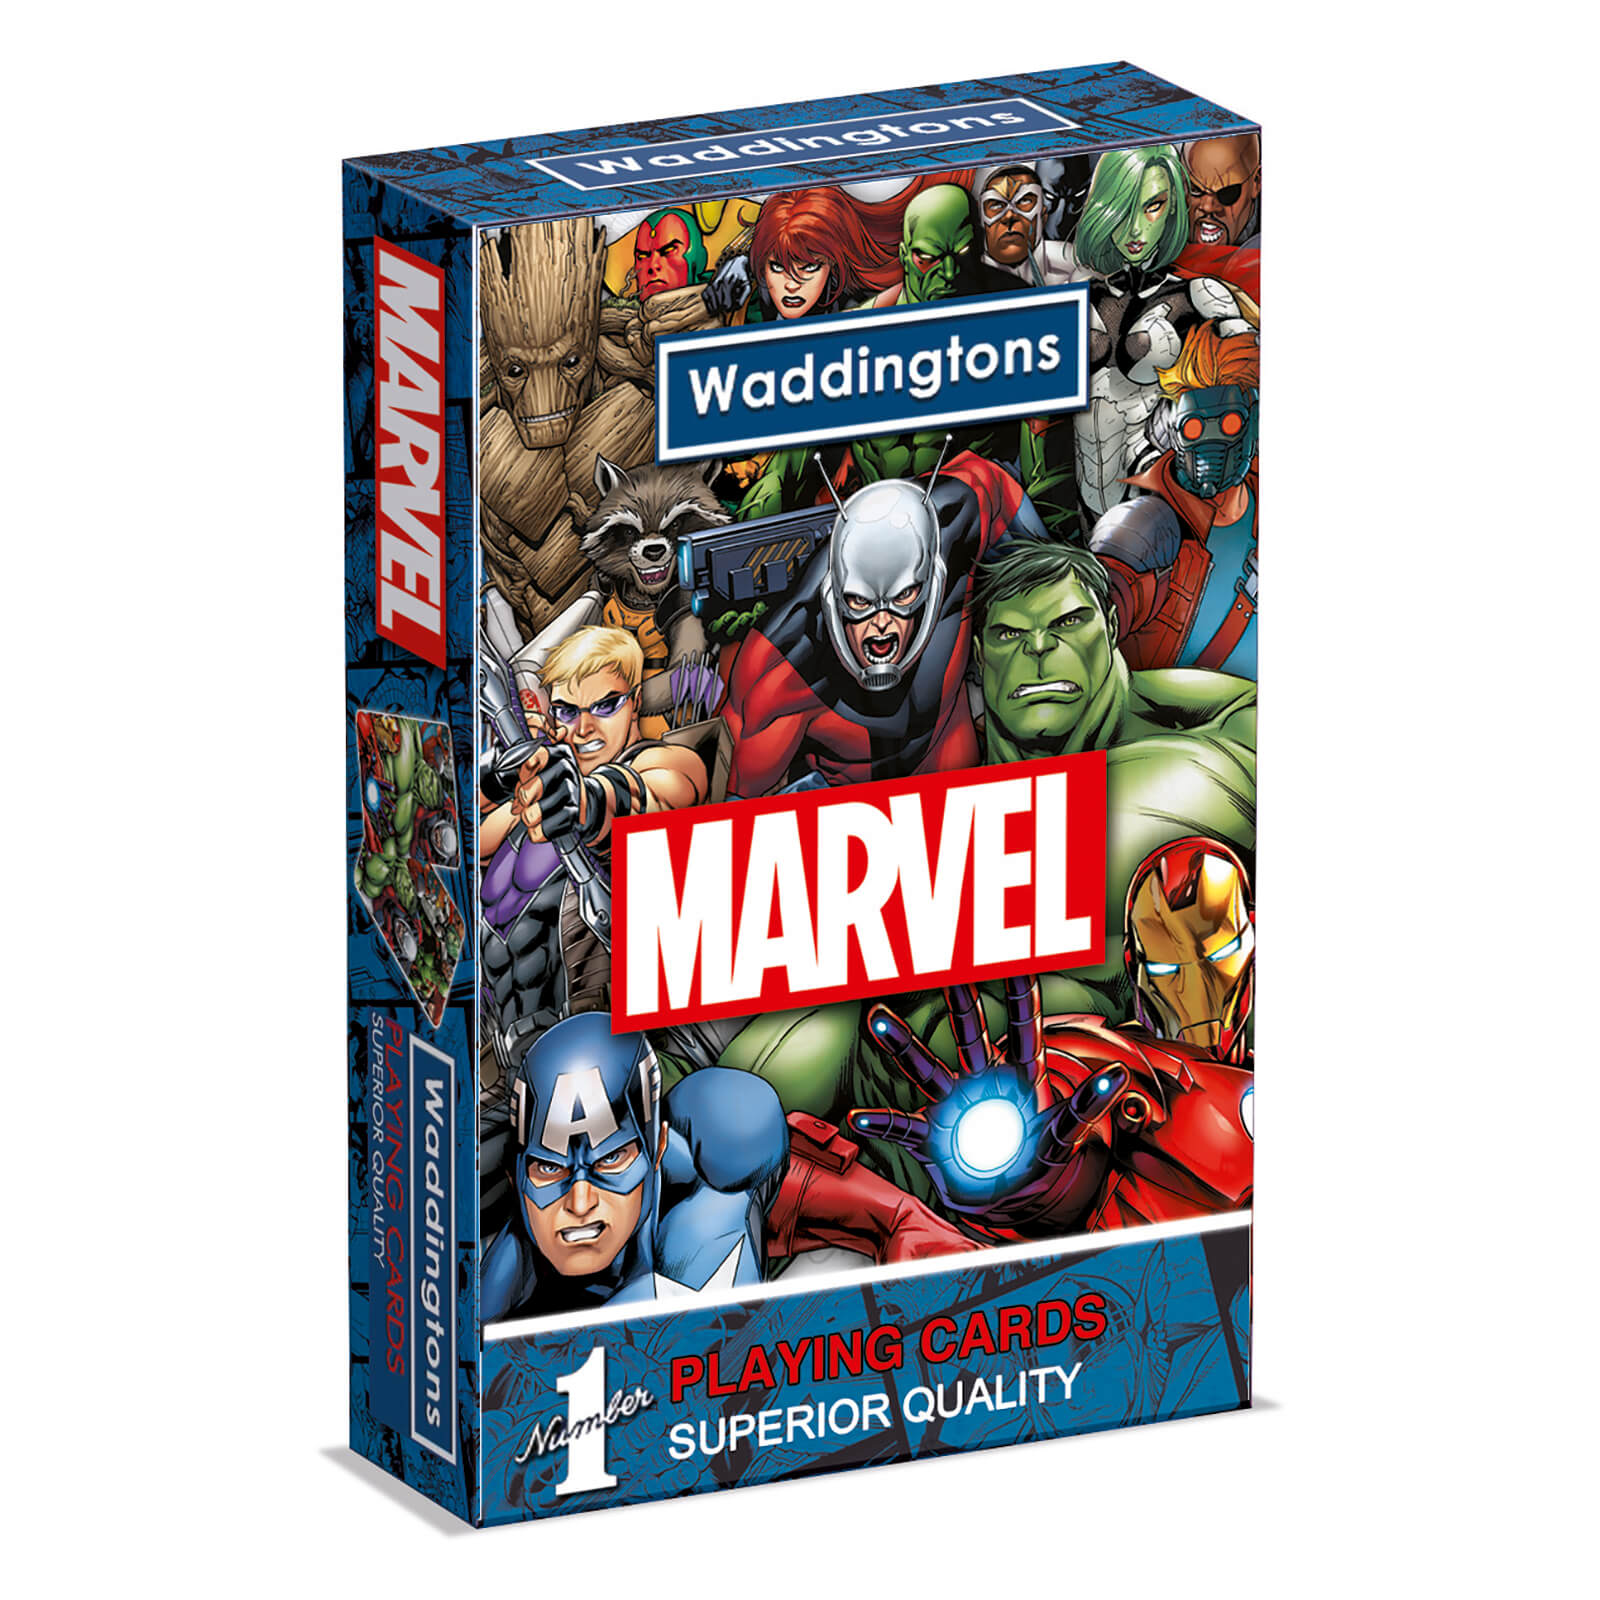 Image of Waddingtons Number 1 Playing Cards - Marvel Universe Edition